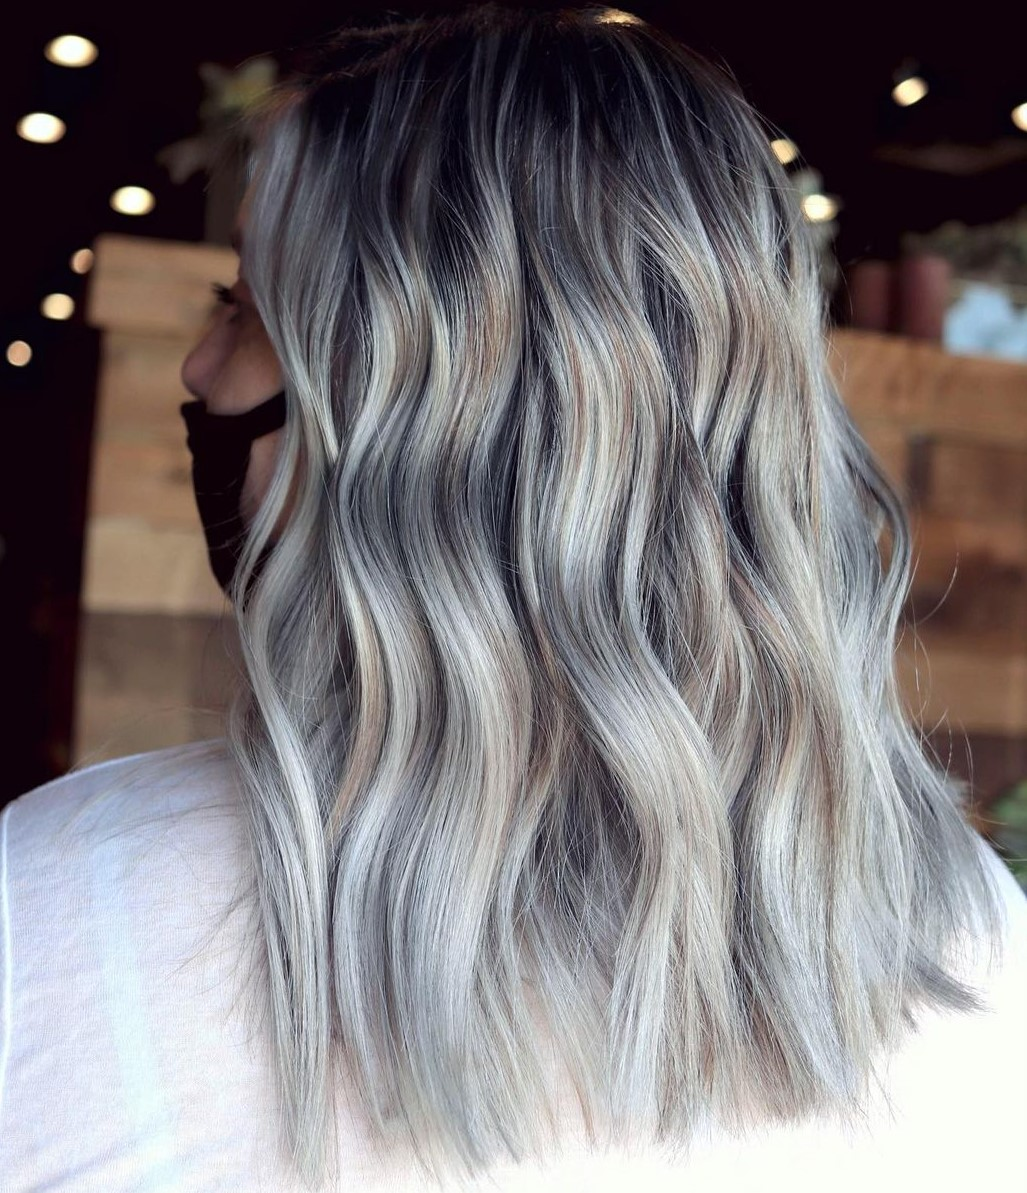 Black Hair with Full Platinum and Silver Highlights